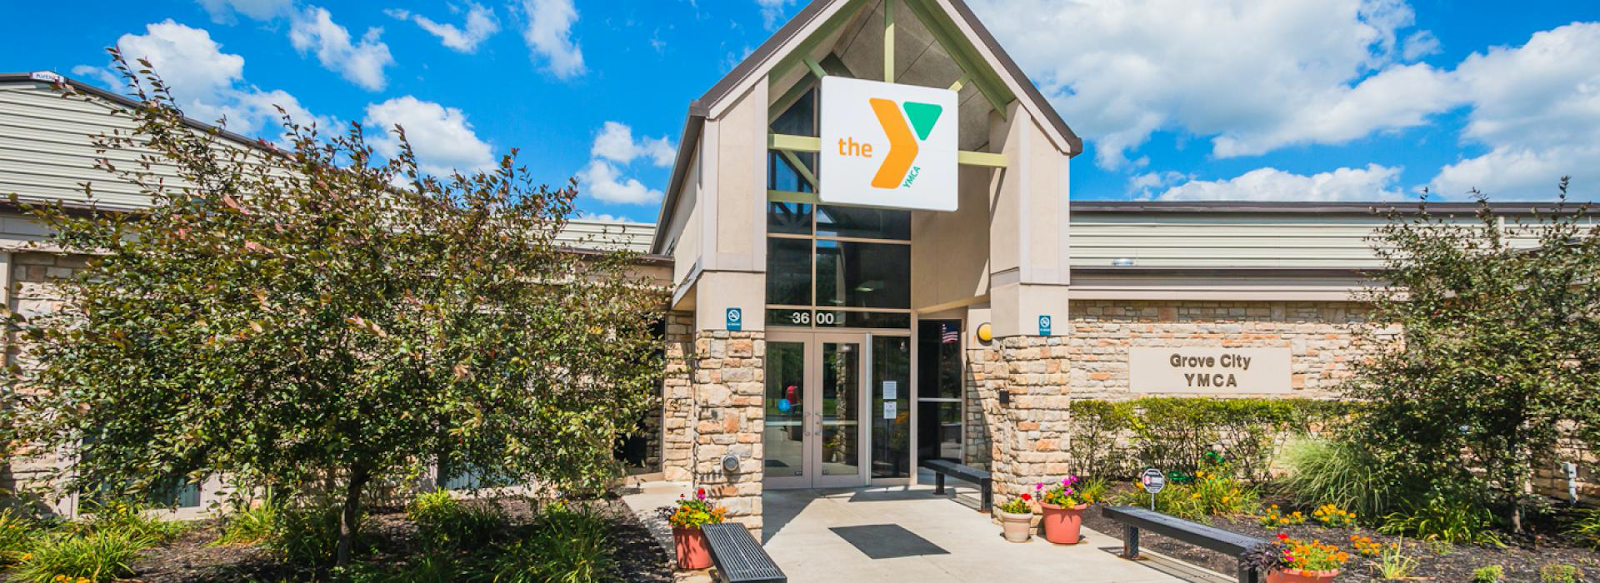 Outside of the Grove City YMCA. Build is long and made of stone.